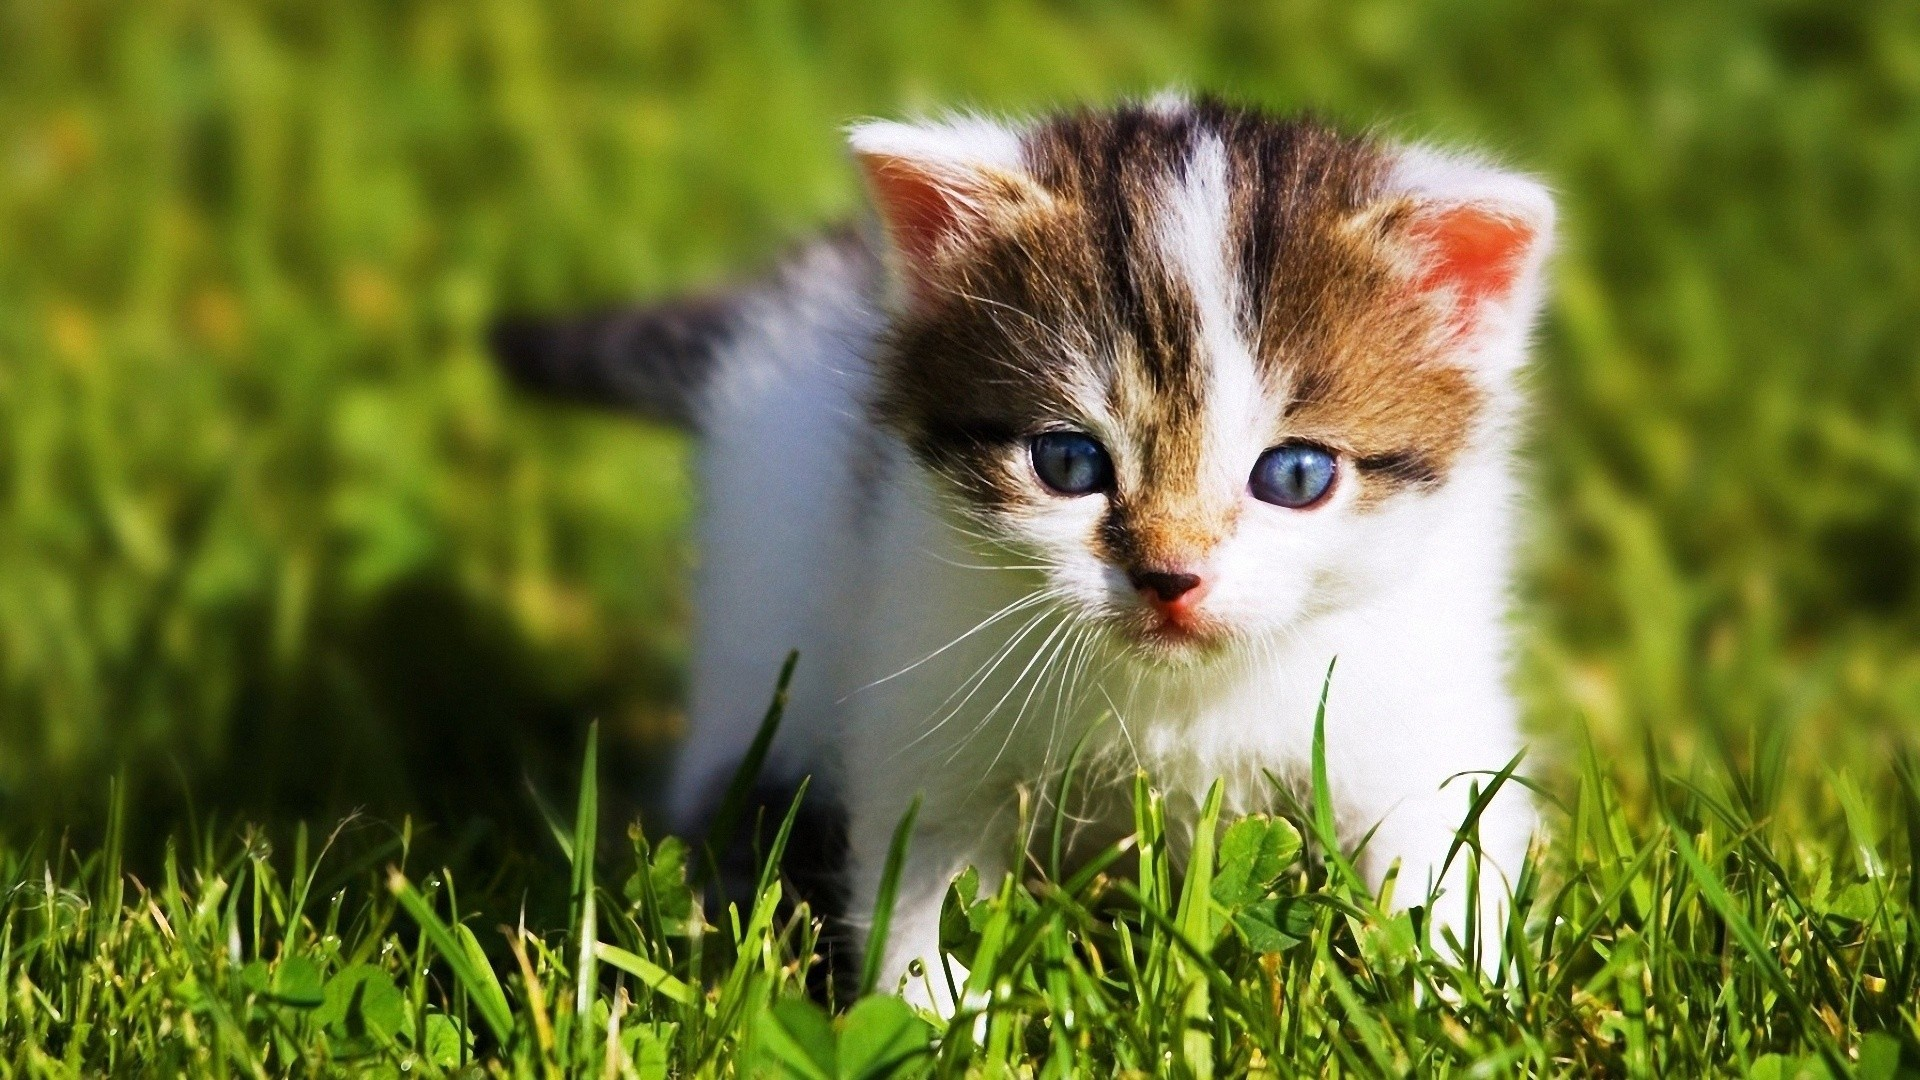 Baby Animal Wallpaper HD Images One HD Wallpaper Pictures .